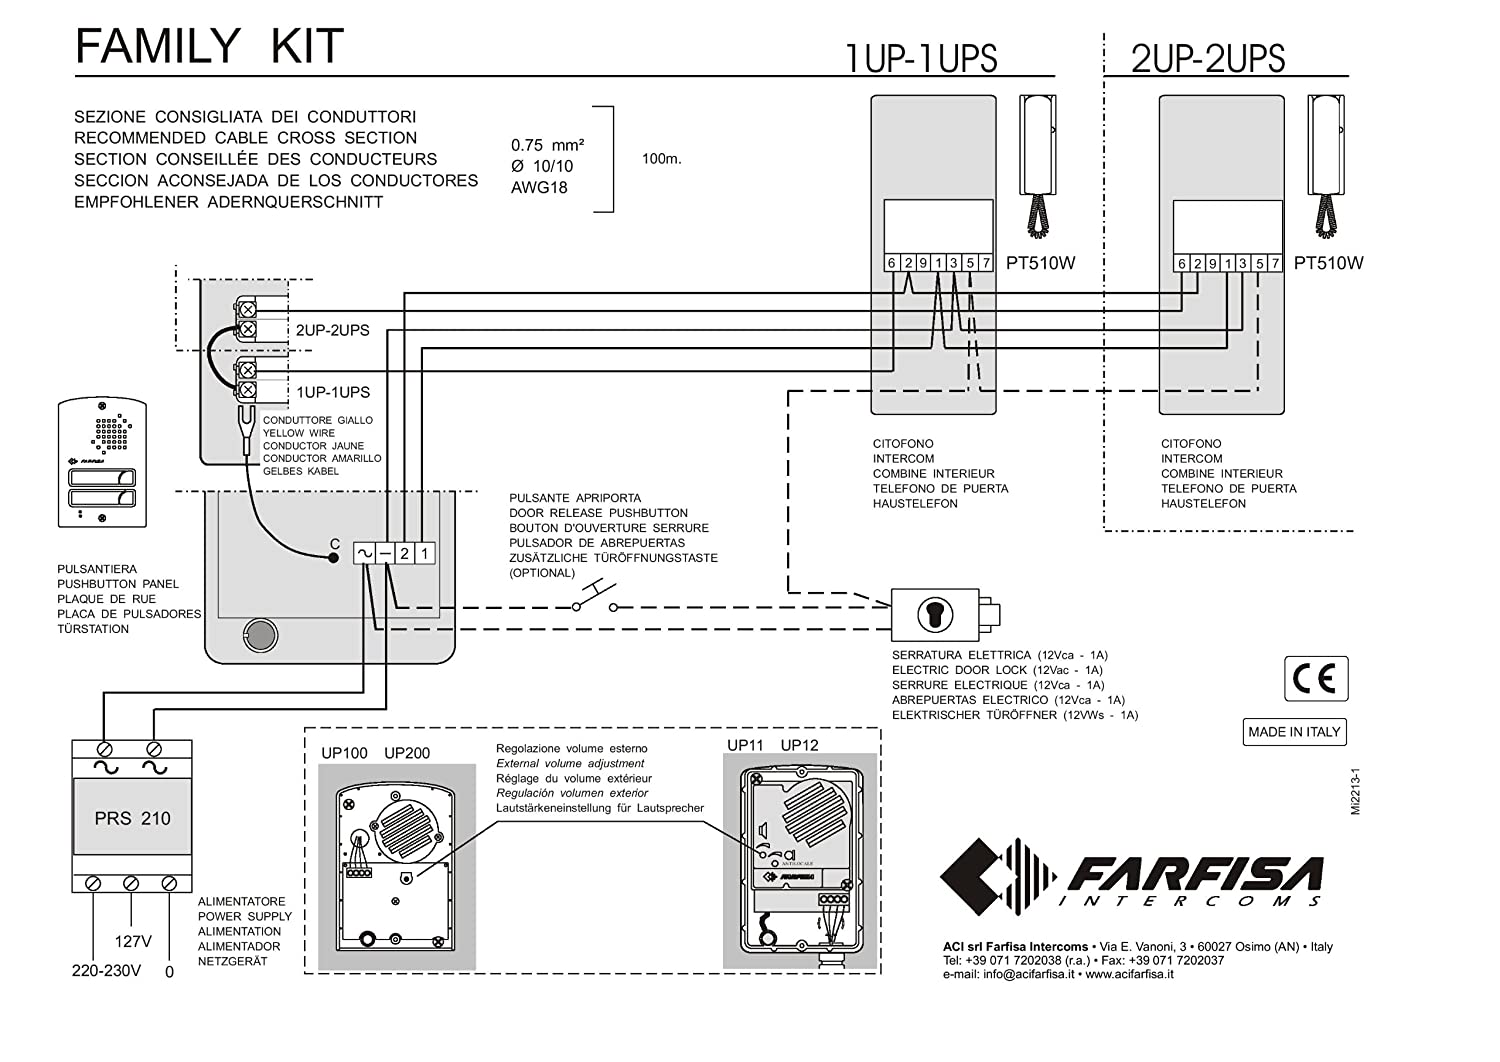 81VvKBixesL._SL1500_ amazon com o9n farfisa 1ups door entry audio intercom 2 way farfisa door entry wiring diagrams at honlapkeszites.co